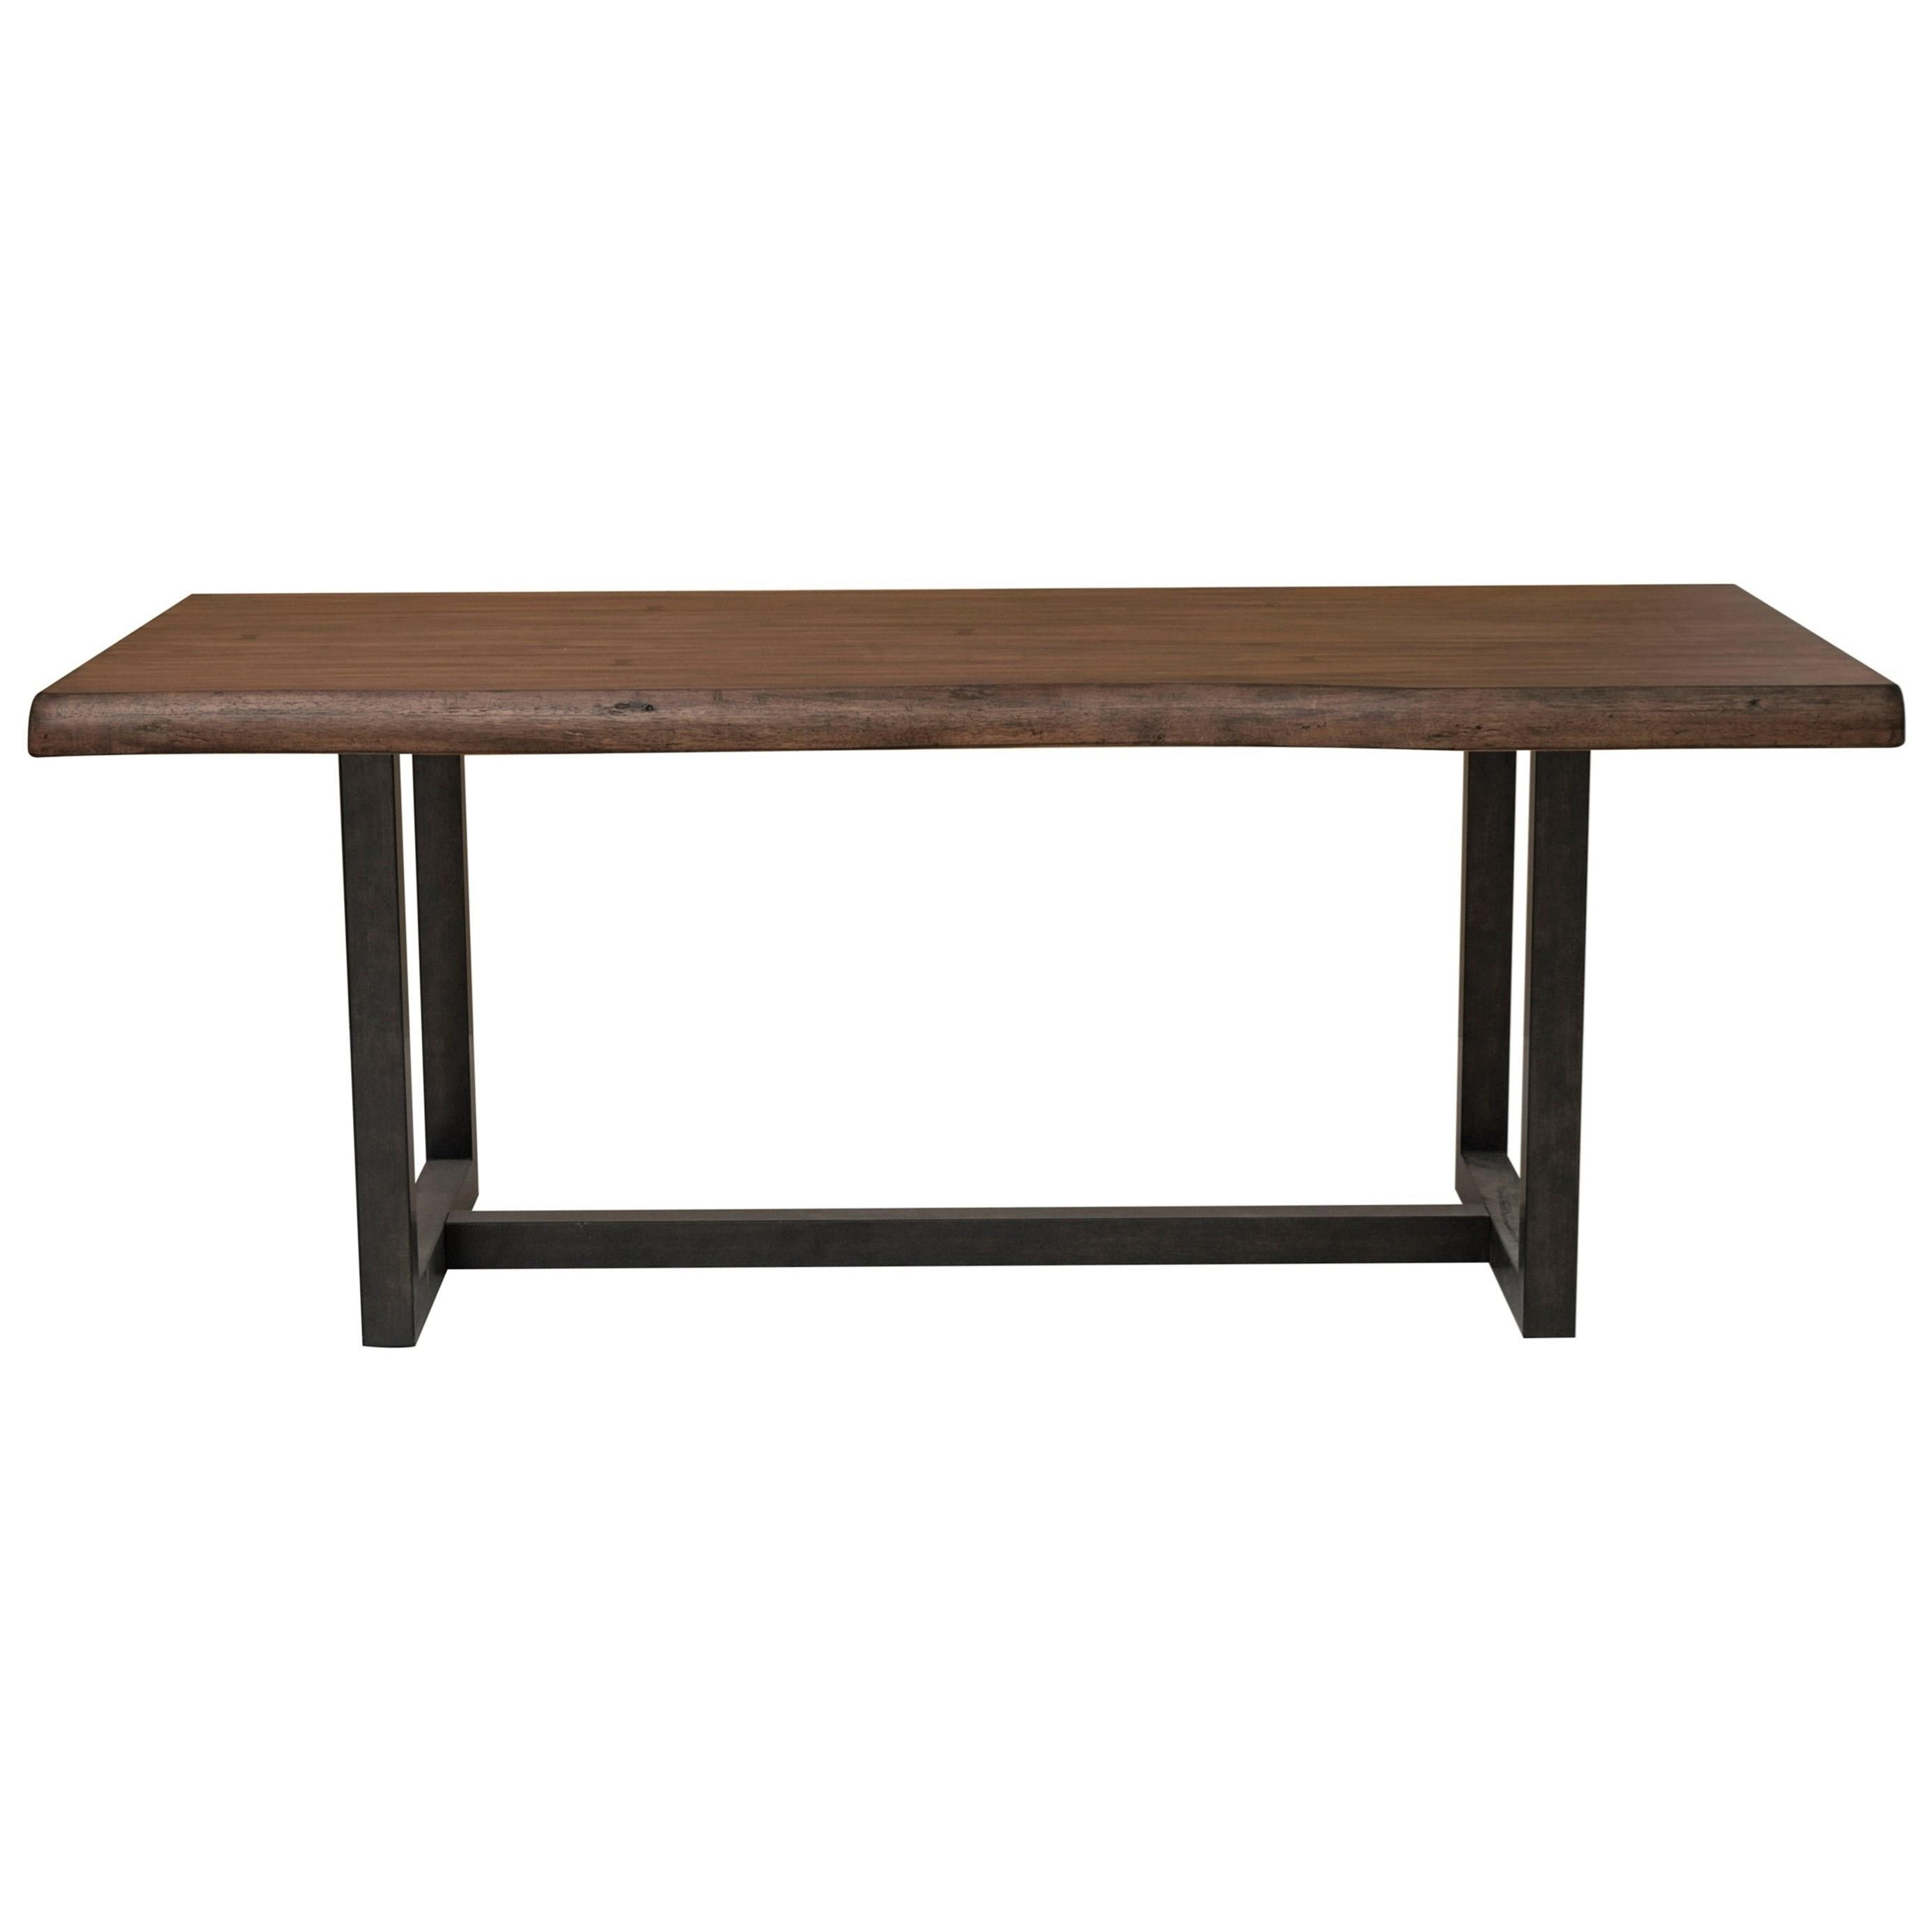 Urban Sofa Live Edge Lincoln Park Contemporary Trestle Dining Table With Live Edge By Samuel Lawrence At Rooms For Less